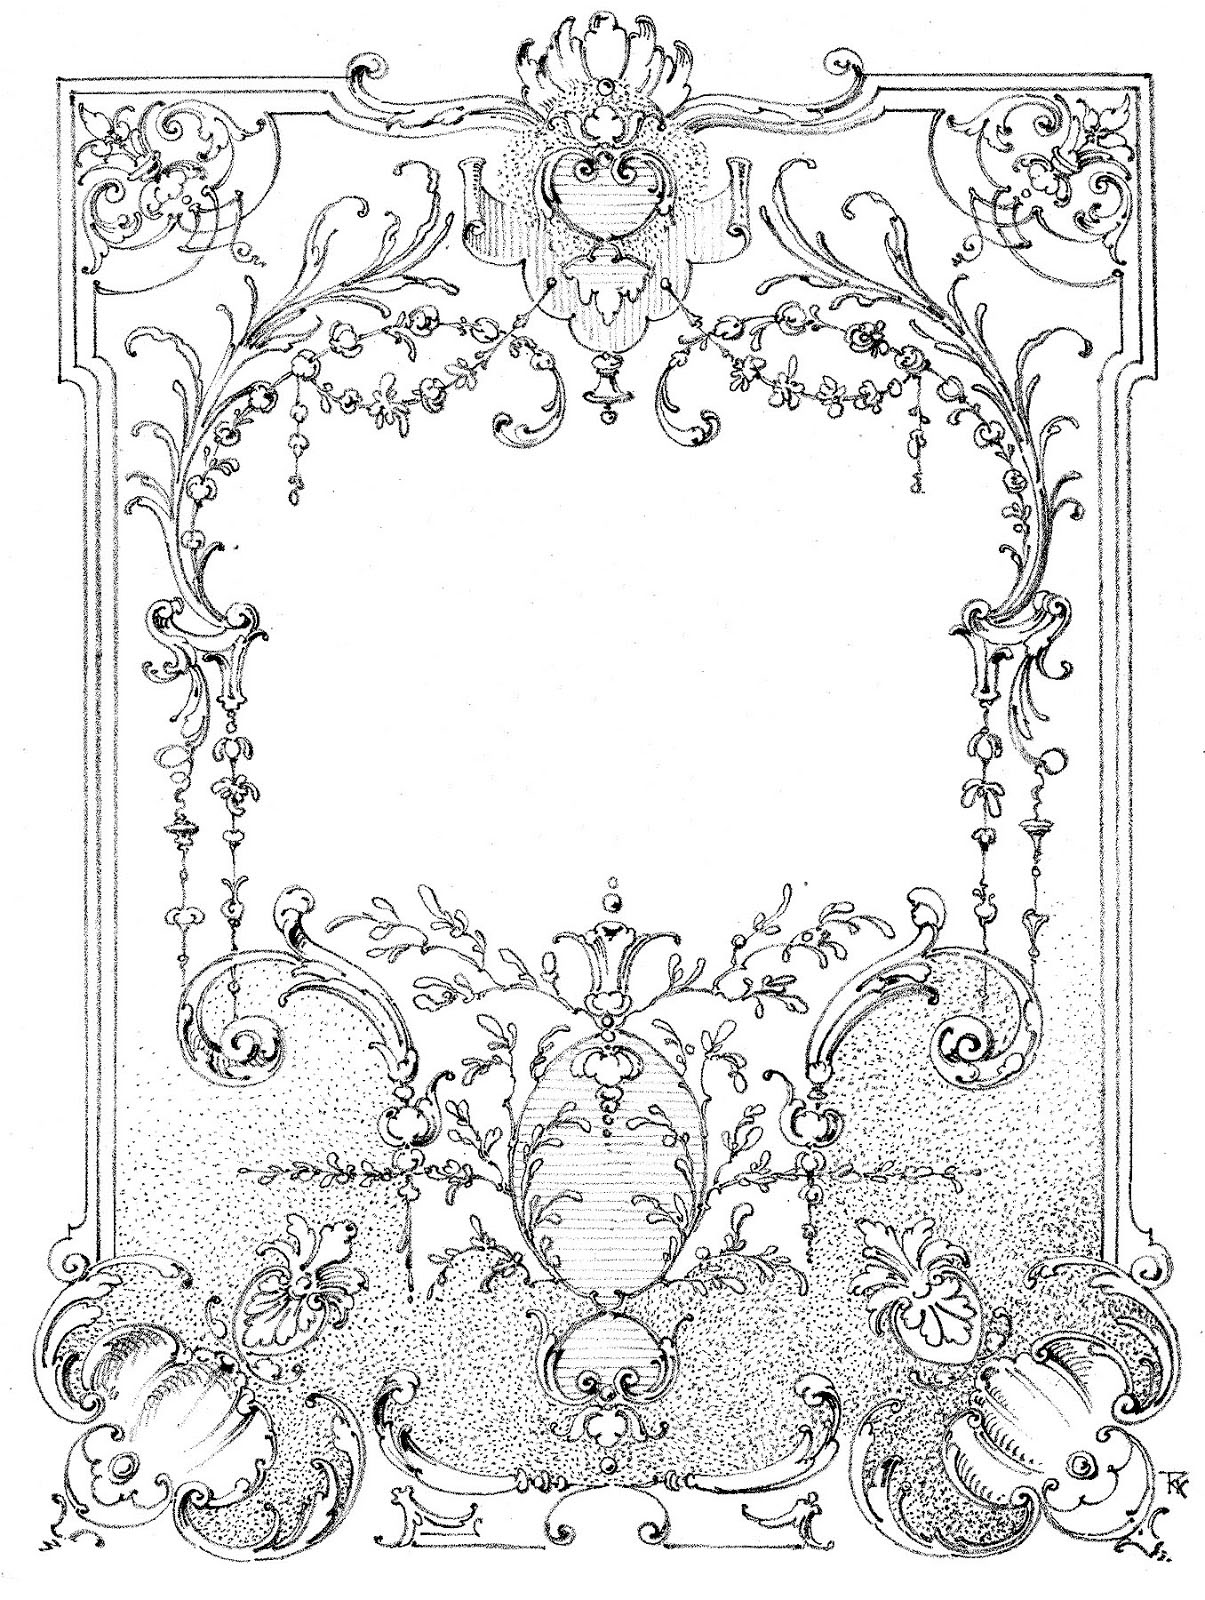 Vintage-Illustration-Fancy-Frame-Image-GraphicsFairy3